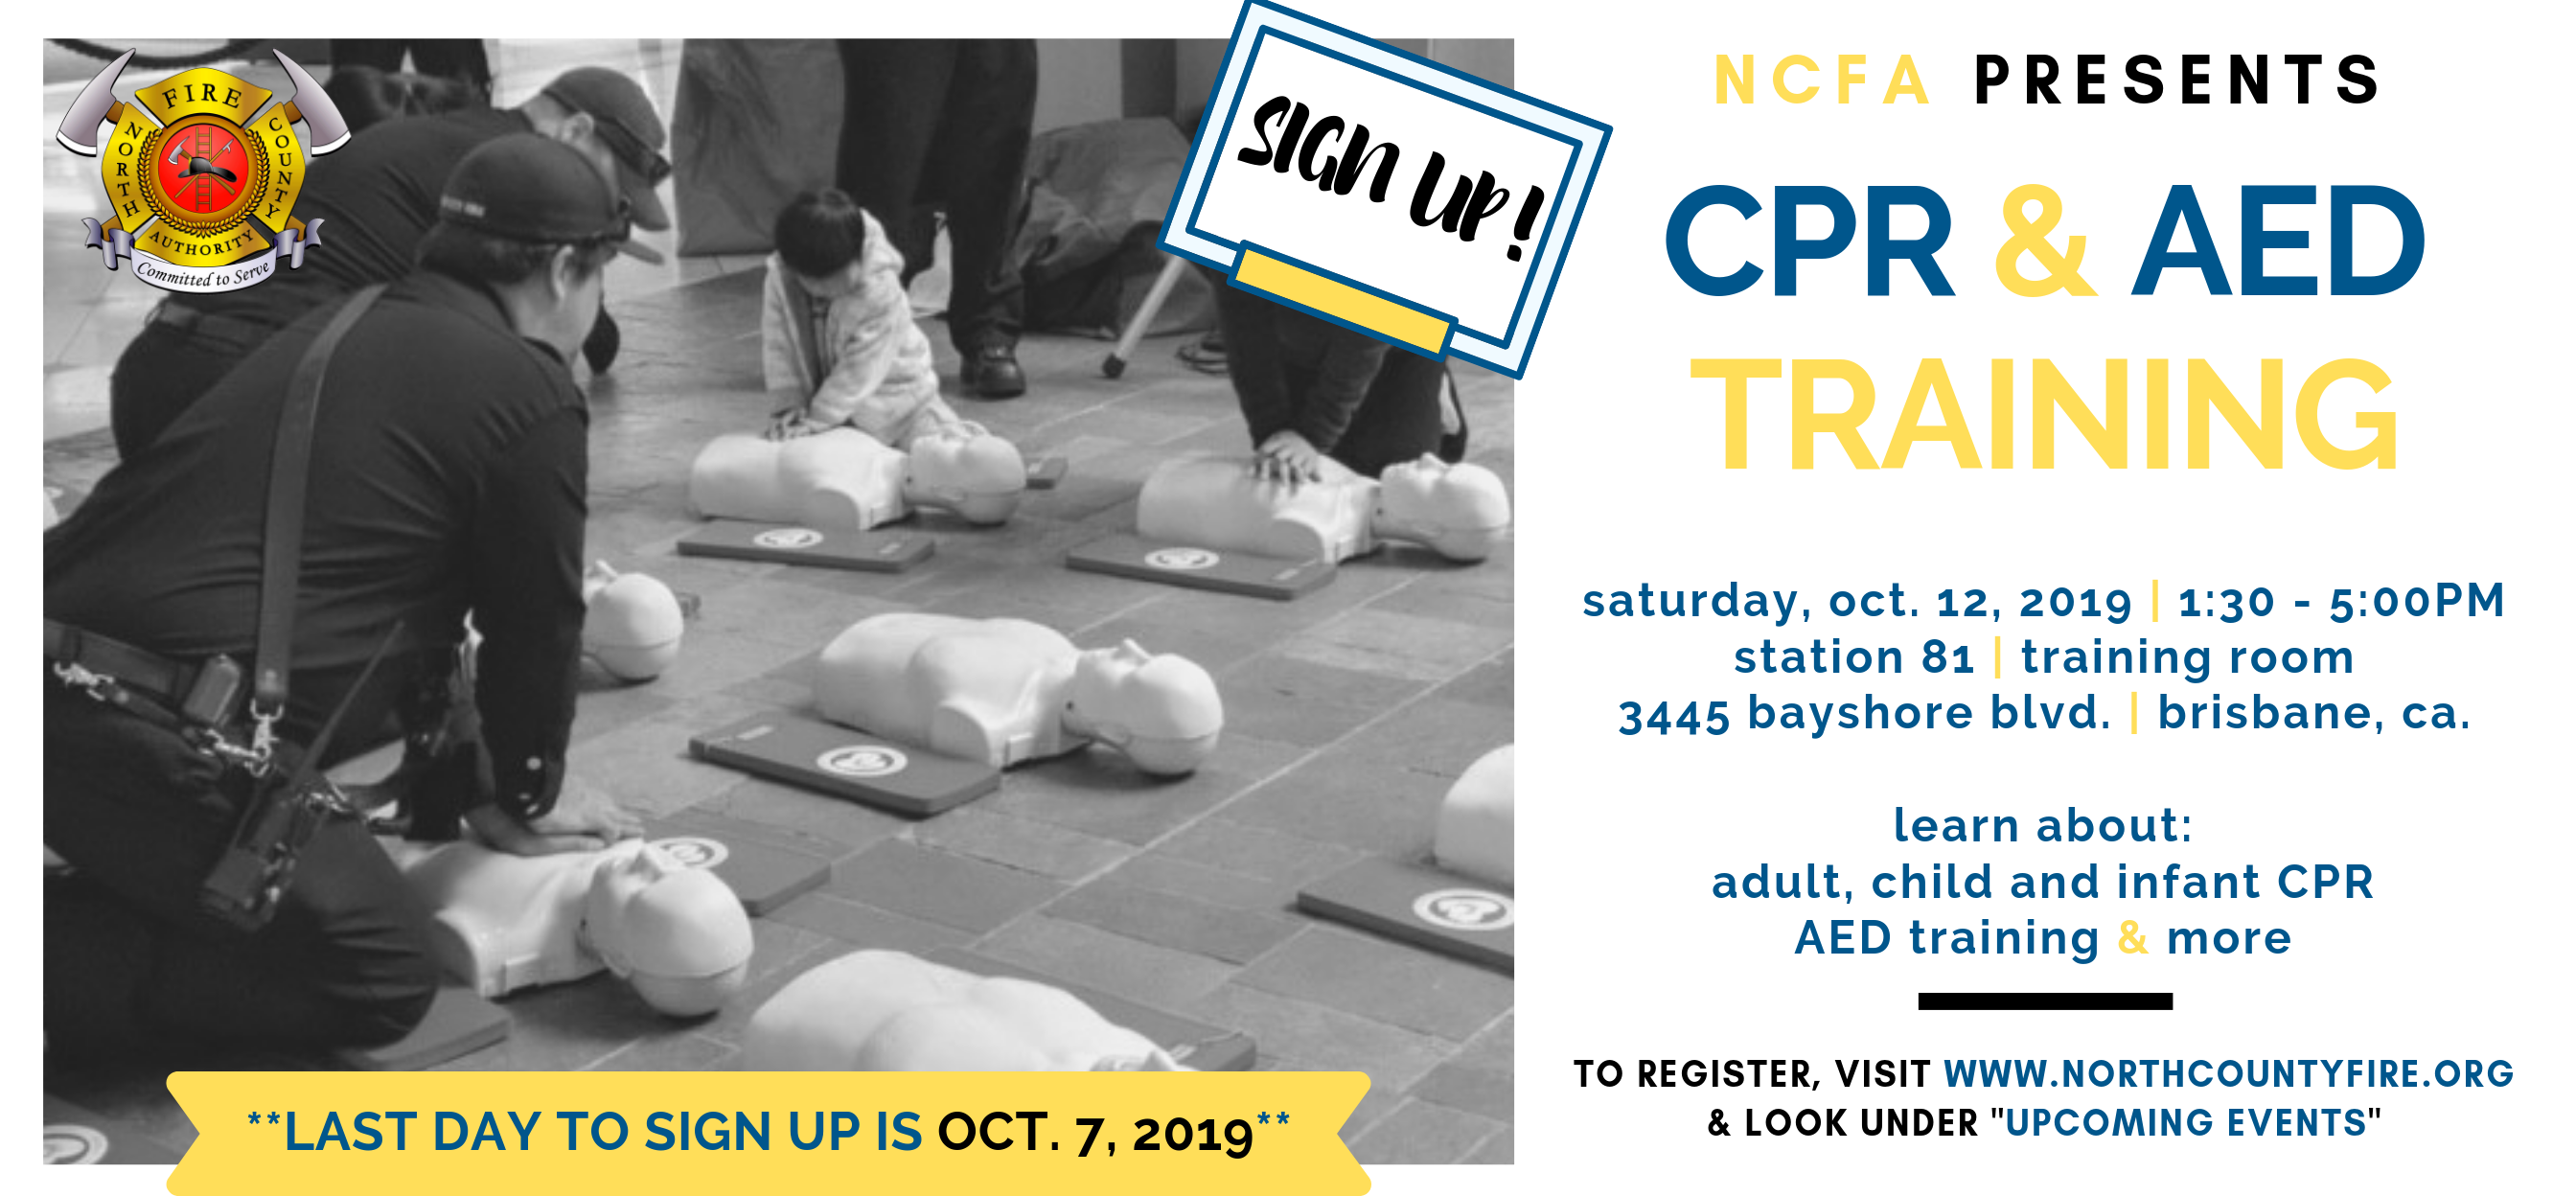 CPR AED Training